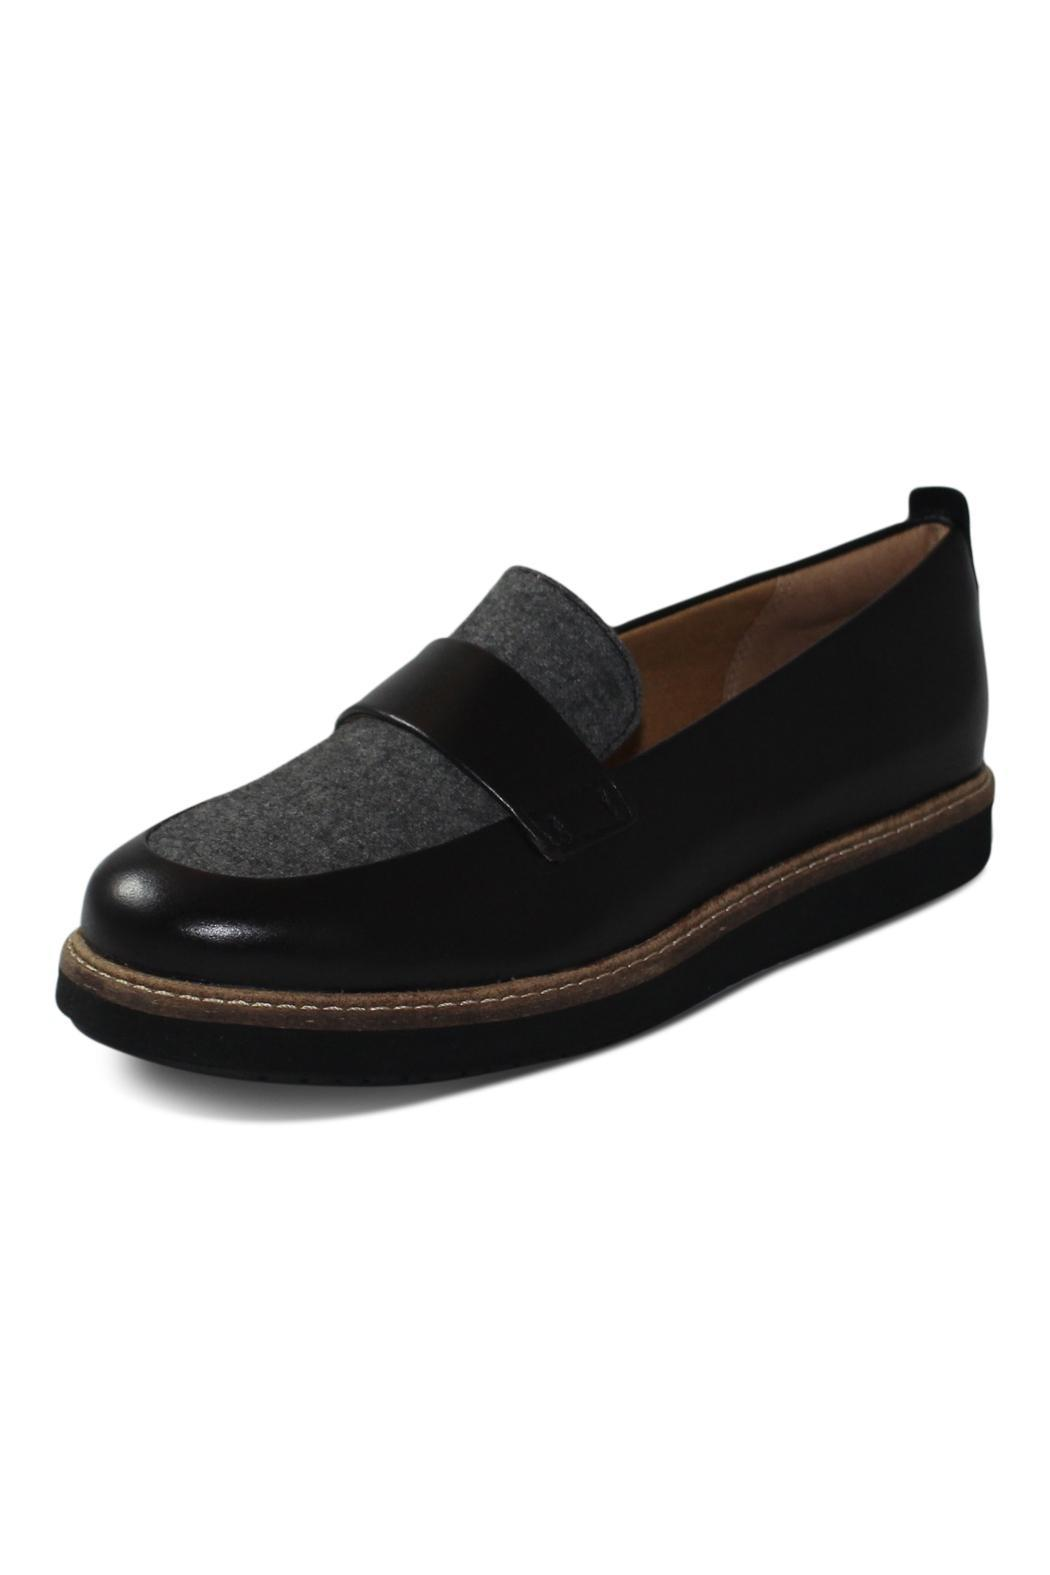 clarks grey flat shoe from columbia by big boot